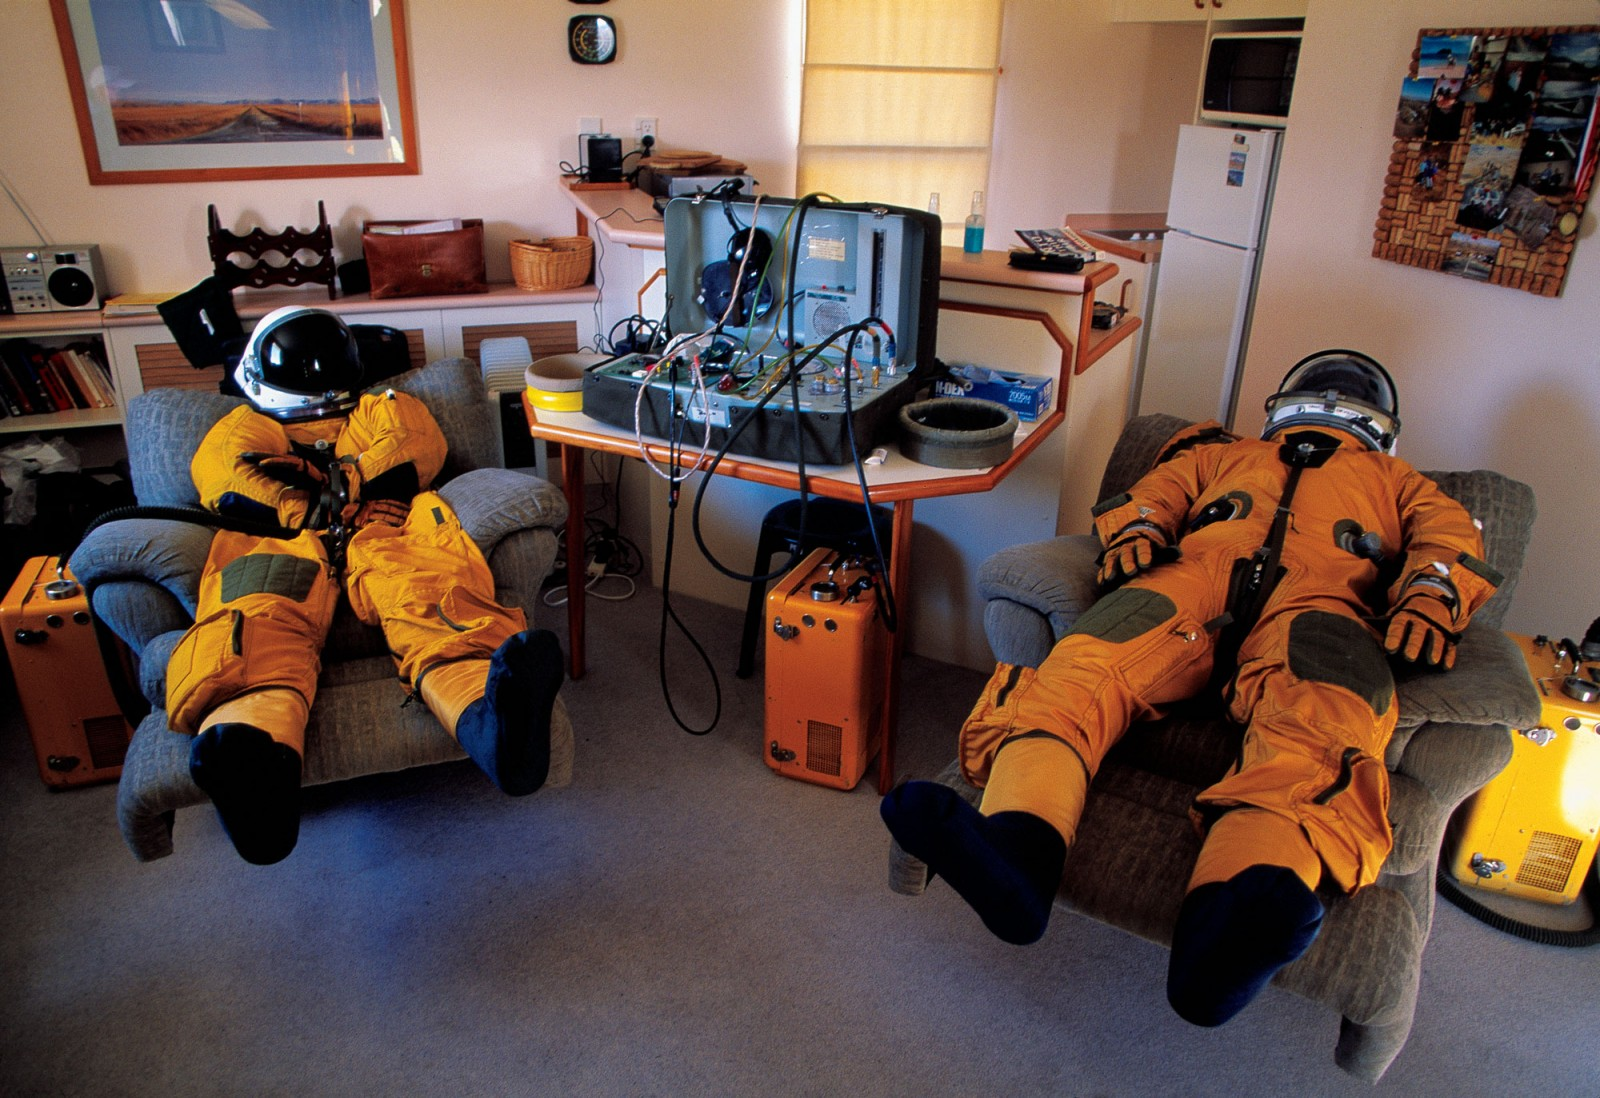 Extreme soarers venture far beyond the human body's atmospheric limits. In their bid to double the world high-altitude gliding record to 100,000 ft (30,500 m), Perlan Project pilots Steve Fossett and Einar Enevoldson must don NASA spacesuits (left). Respiration and perspiration inside the suits' hermetic embrace make it desirable to inflate and air them after use—treatment being administered here.